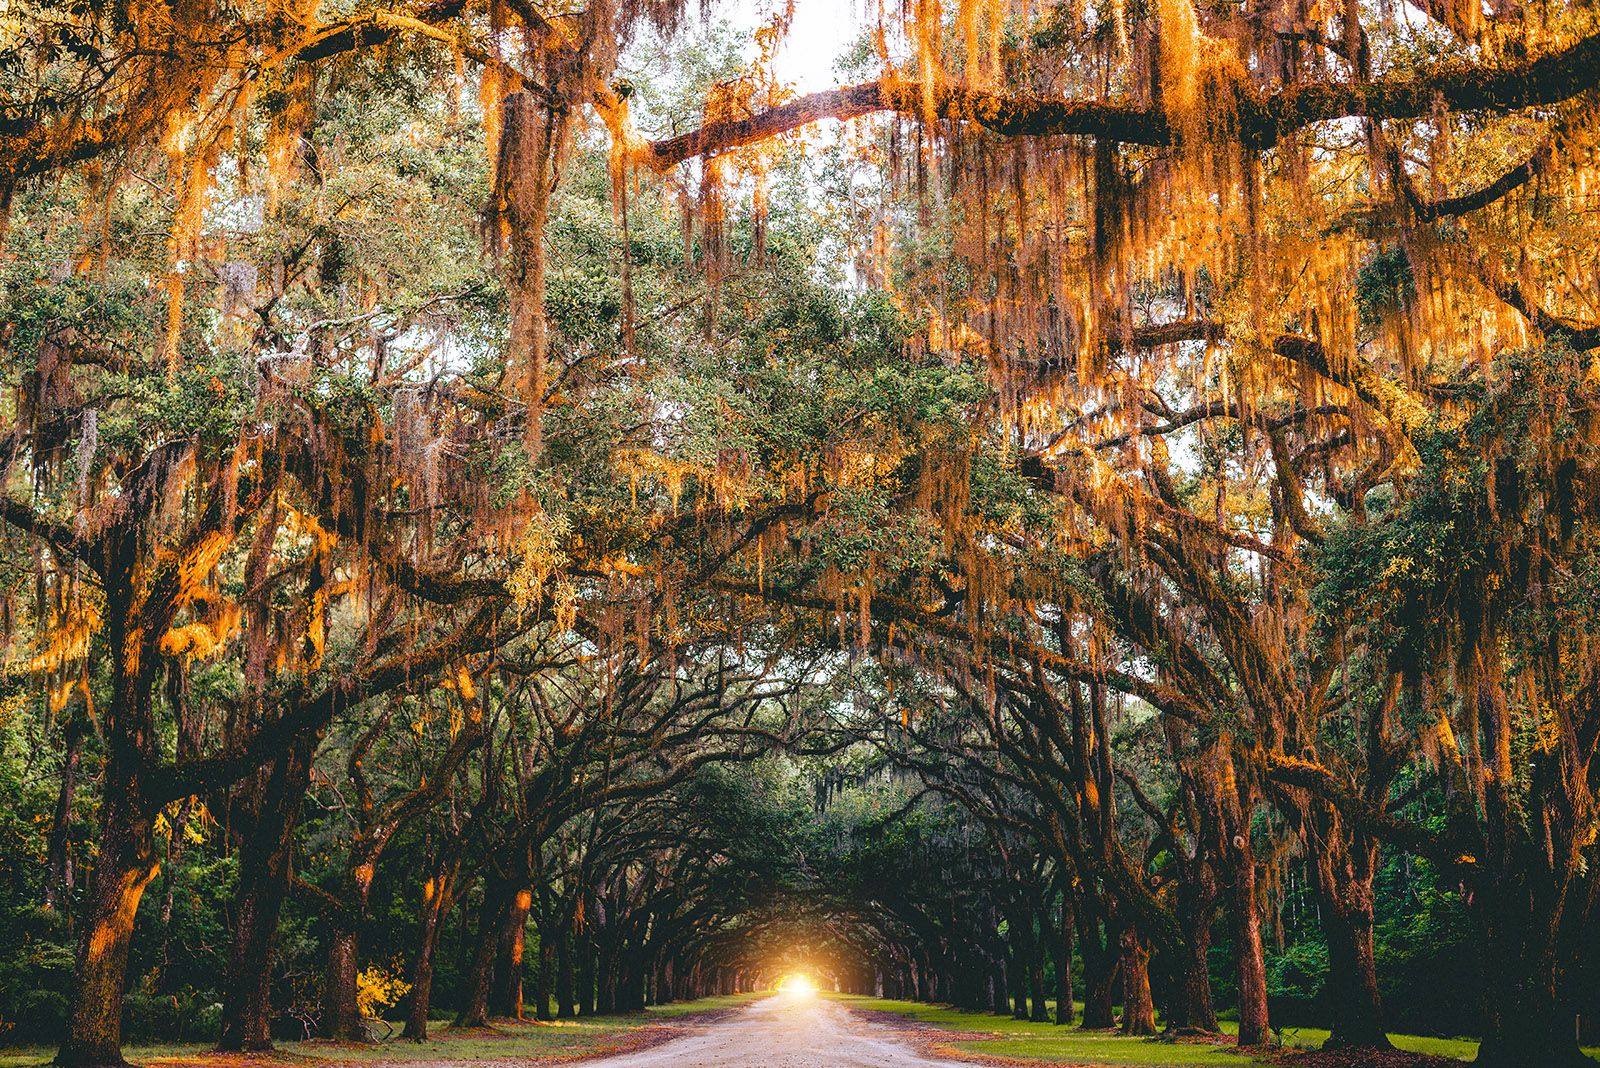 trees at sunset draped with spanish moss